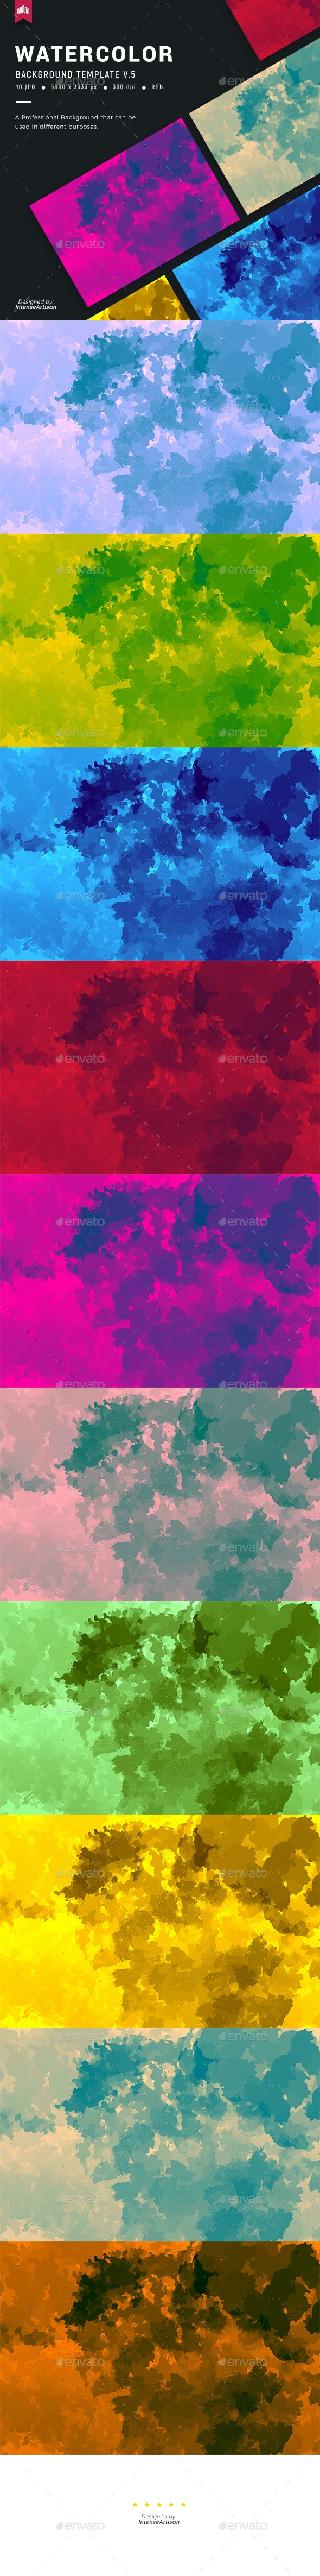 Watercolor V.5 - Background - Abstract Backgrounds